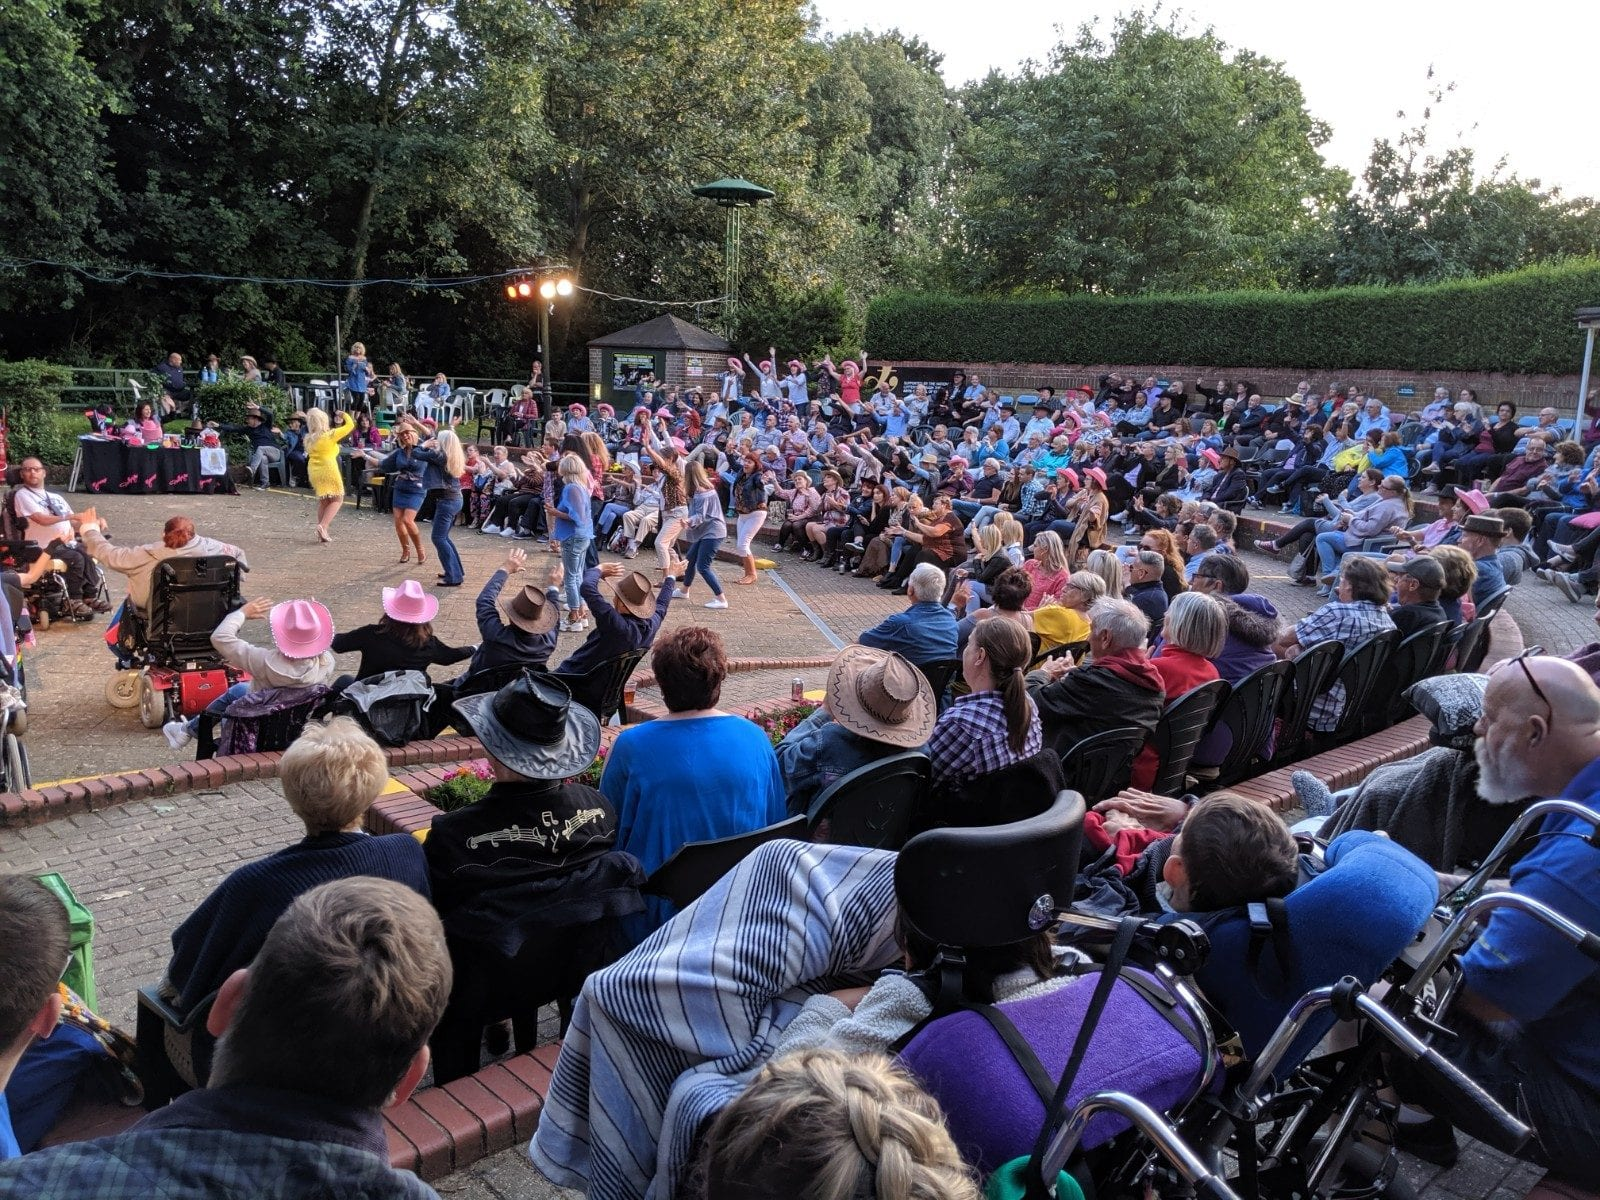 Theatre in the Park show